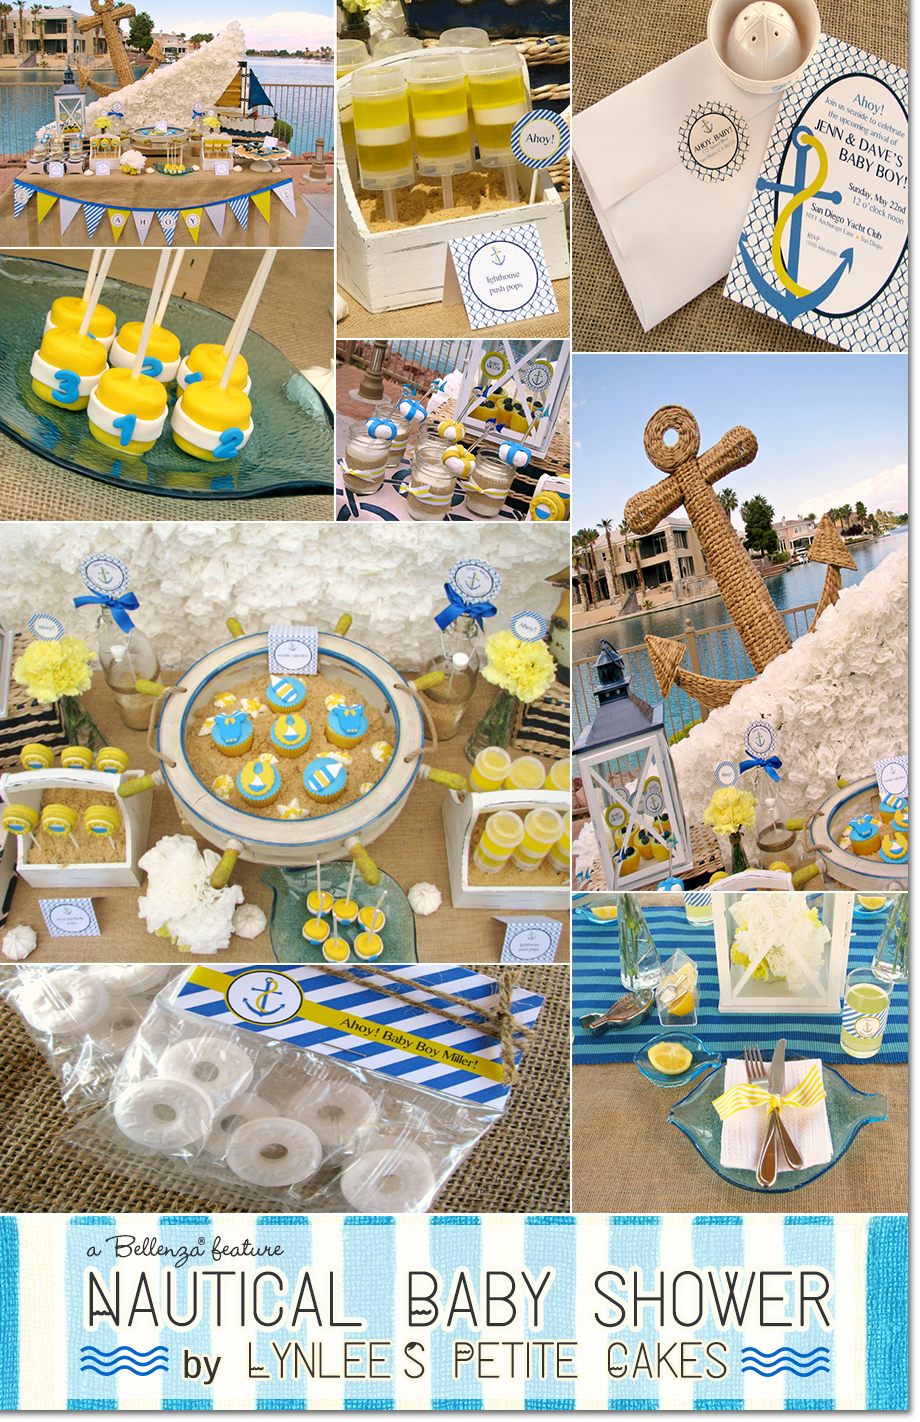 Nautical Baby Shower with styling, desserts, and photography done by Lynlee's as featured on the Party Suite at Bellenza